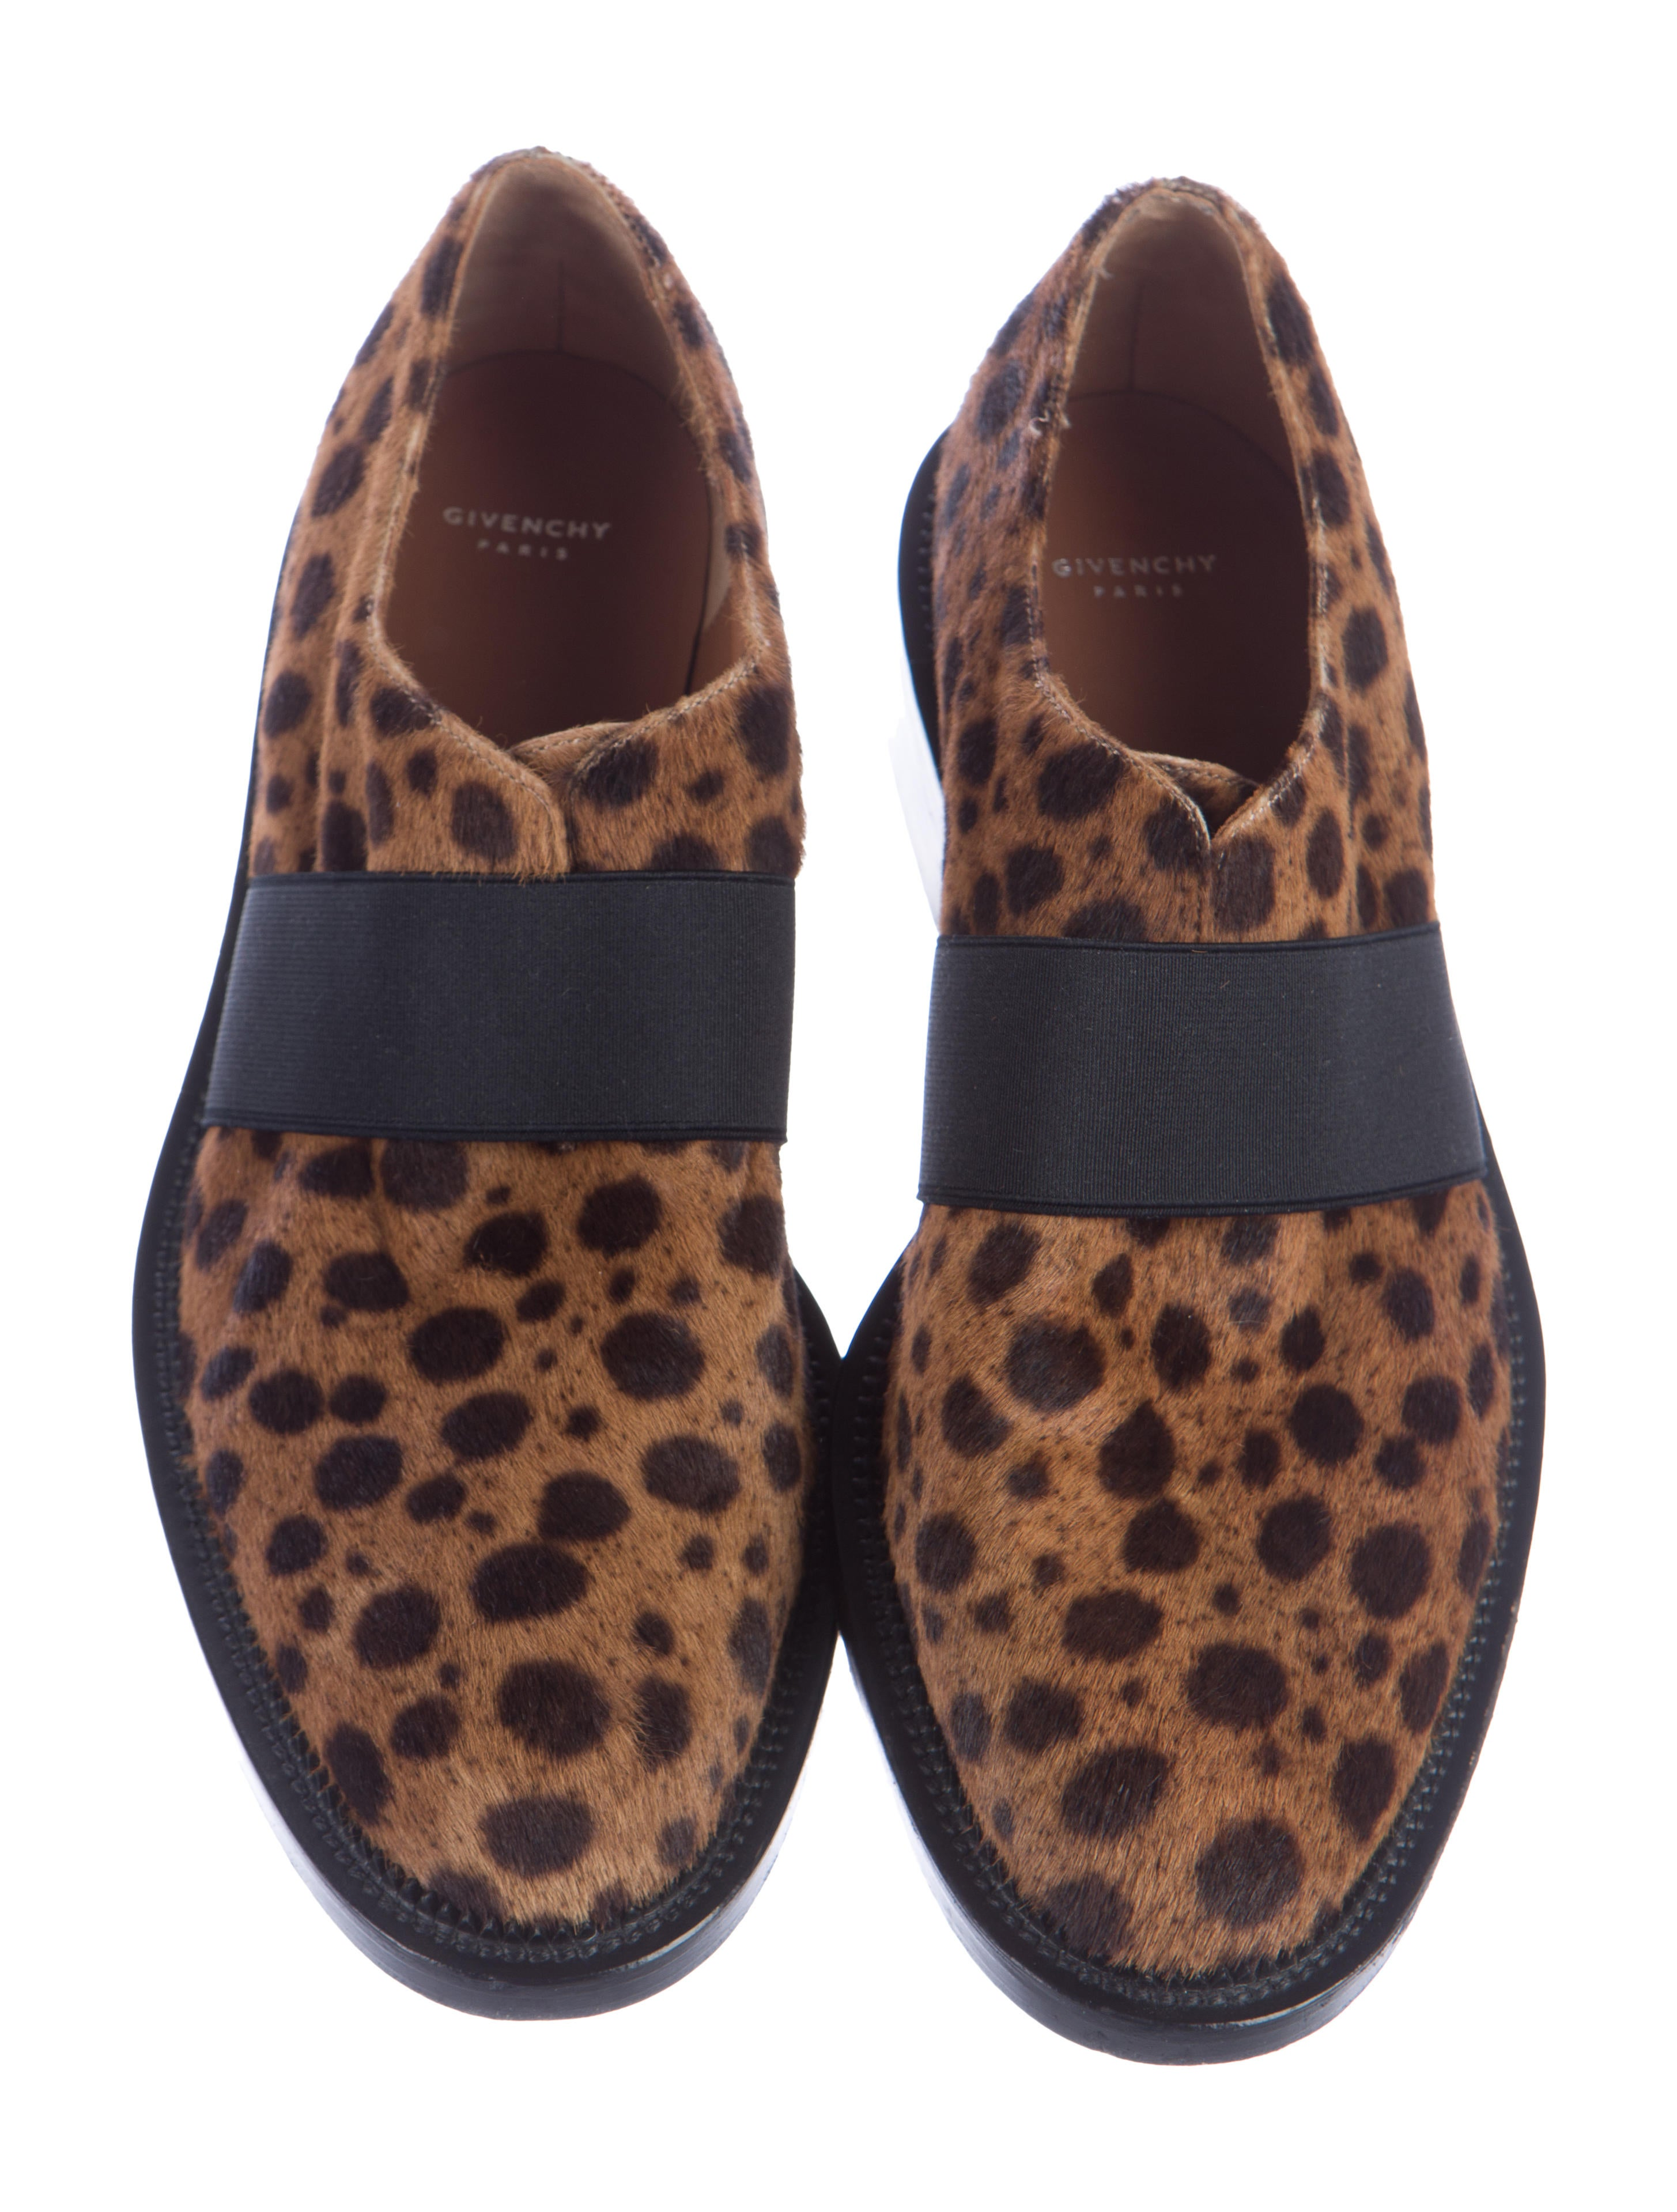 givenchy laceless ponyhair dress shoes shoes giv34443